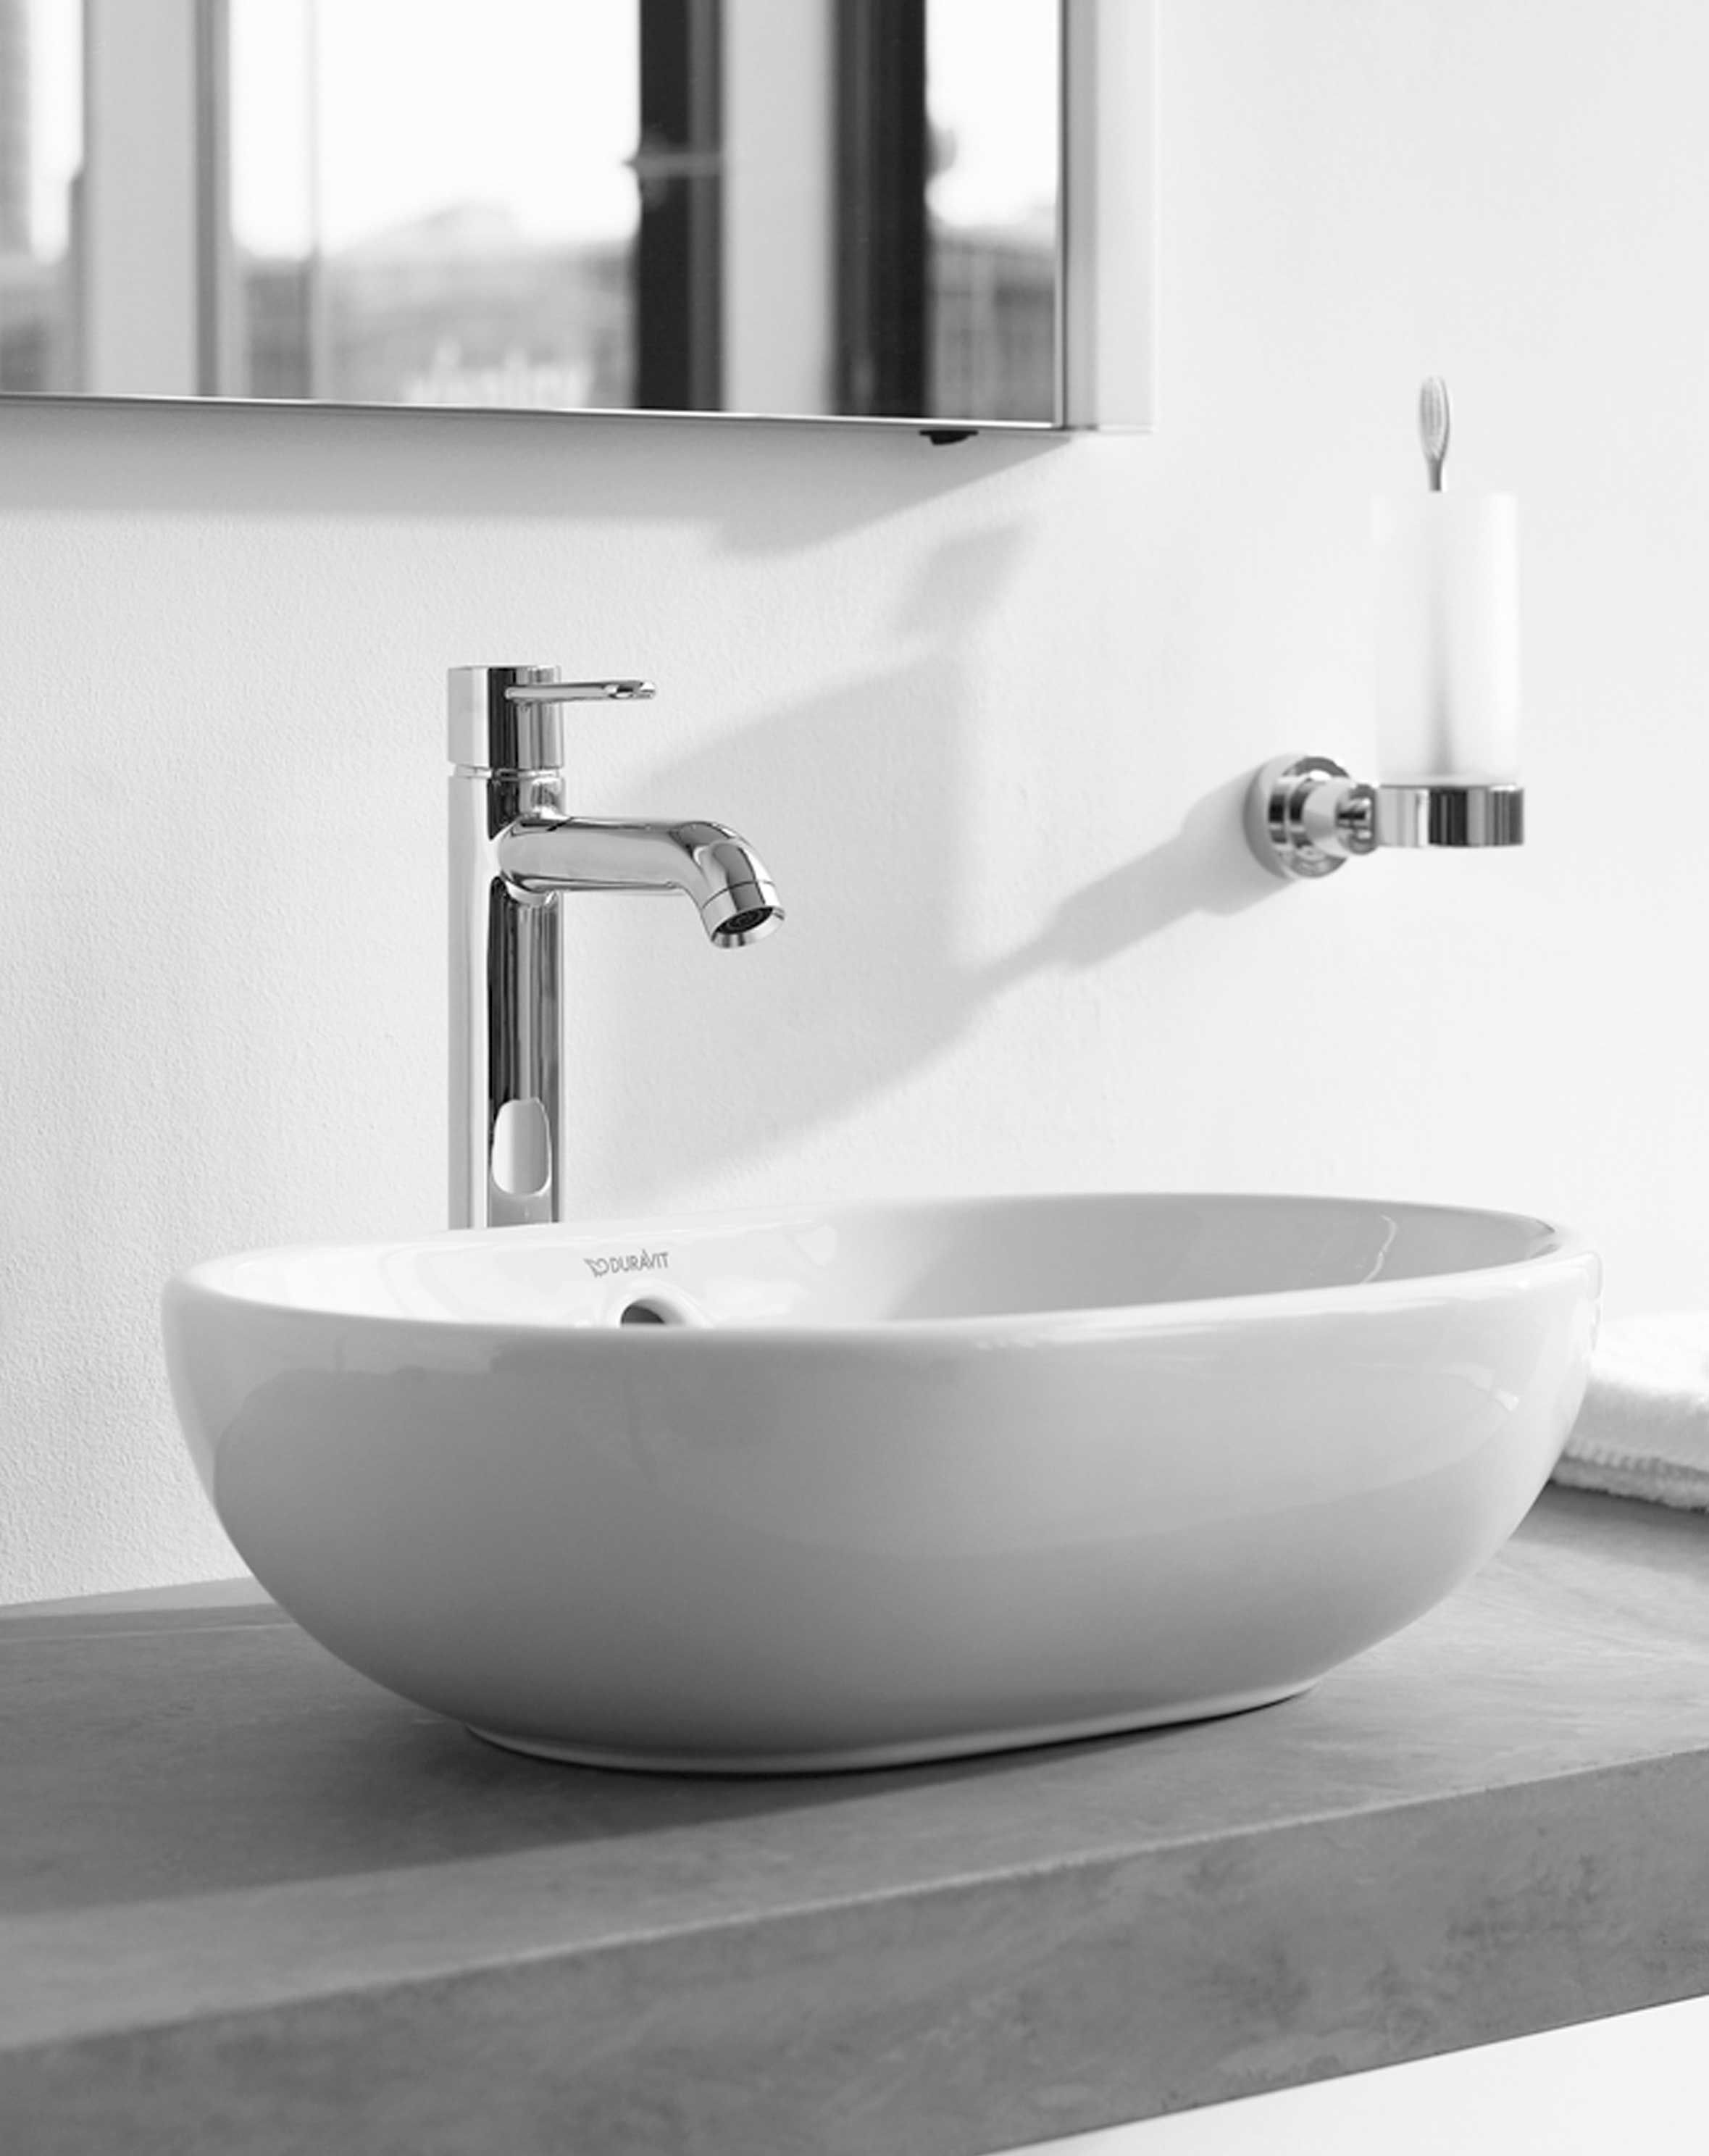 darling units from pedestal product duravit sink architonic new en vanity h